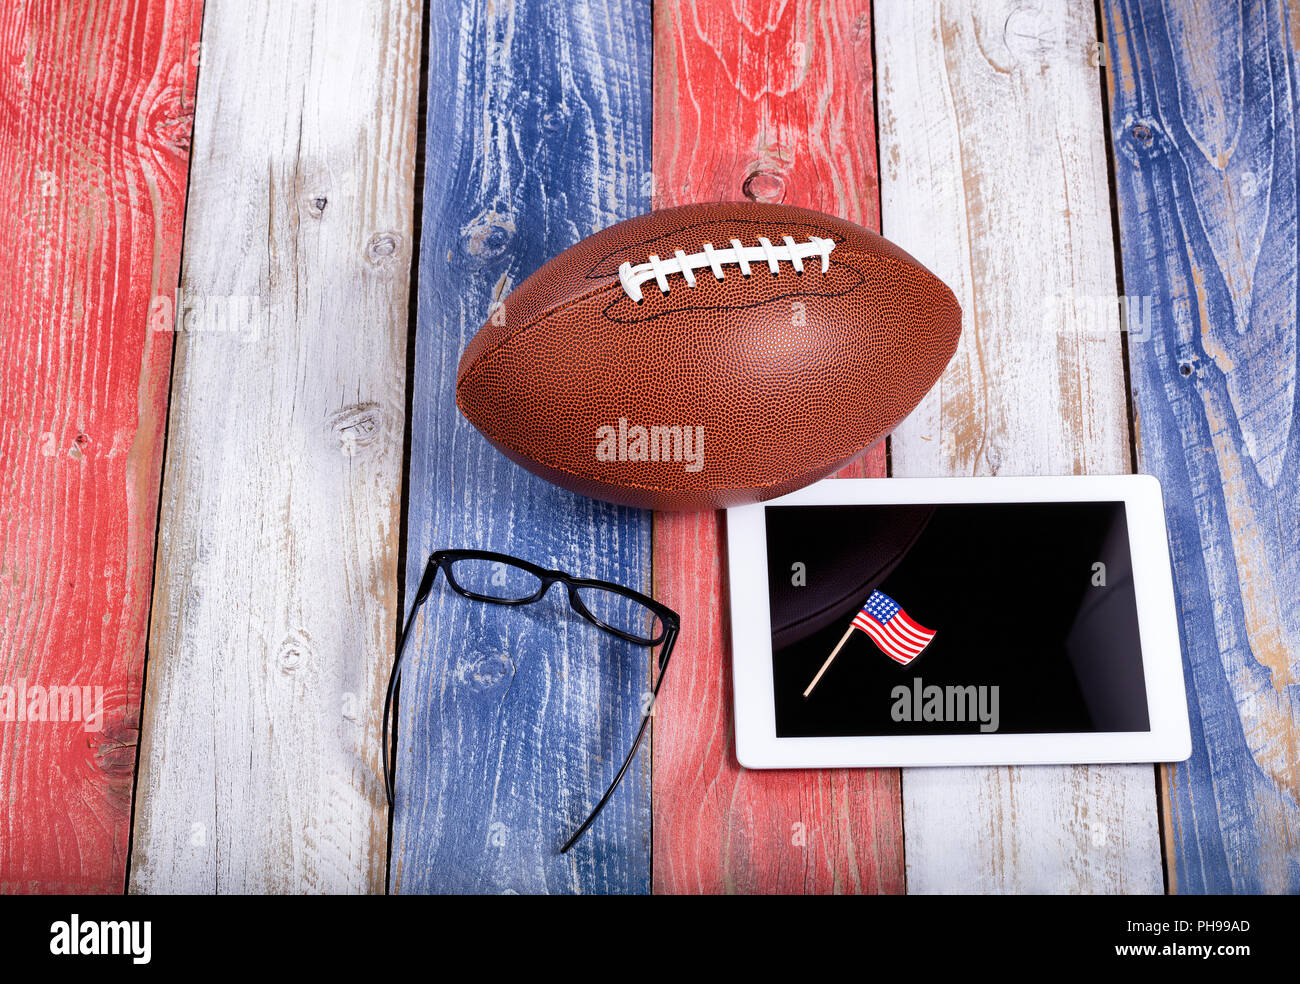 Analyzing American football game with computer technology - Stock Image